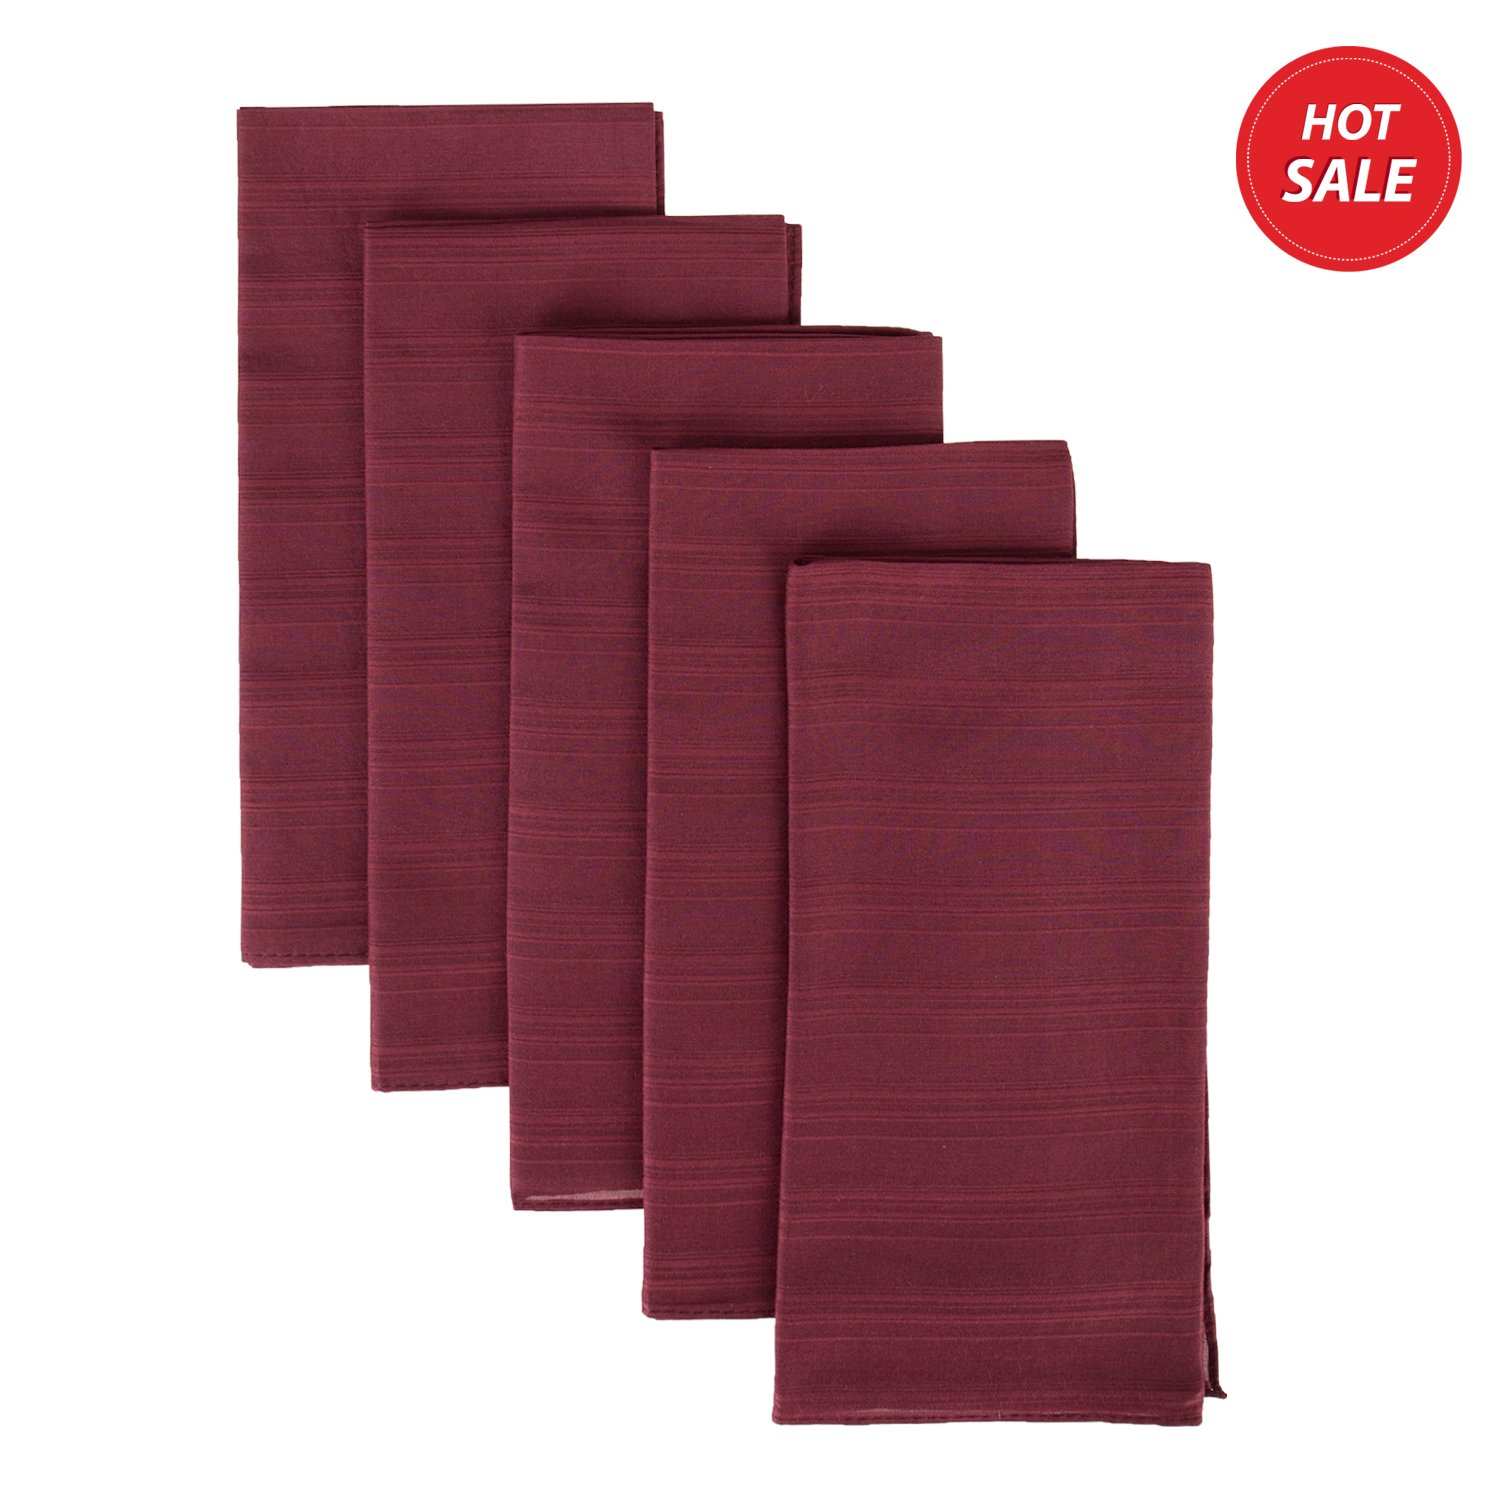 ZESTILK Silk and Cotton Handkerchief (Wine Red) SCH01